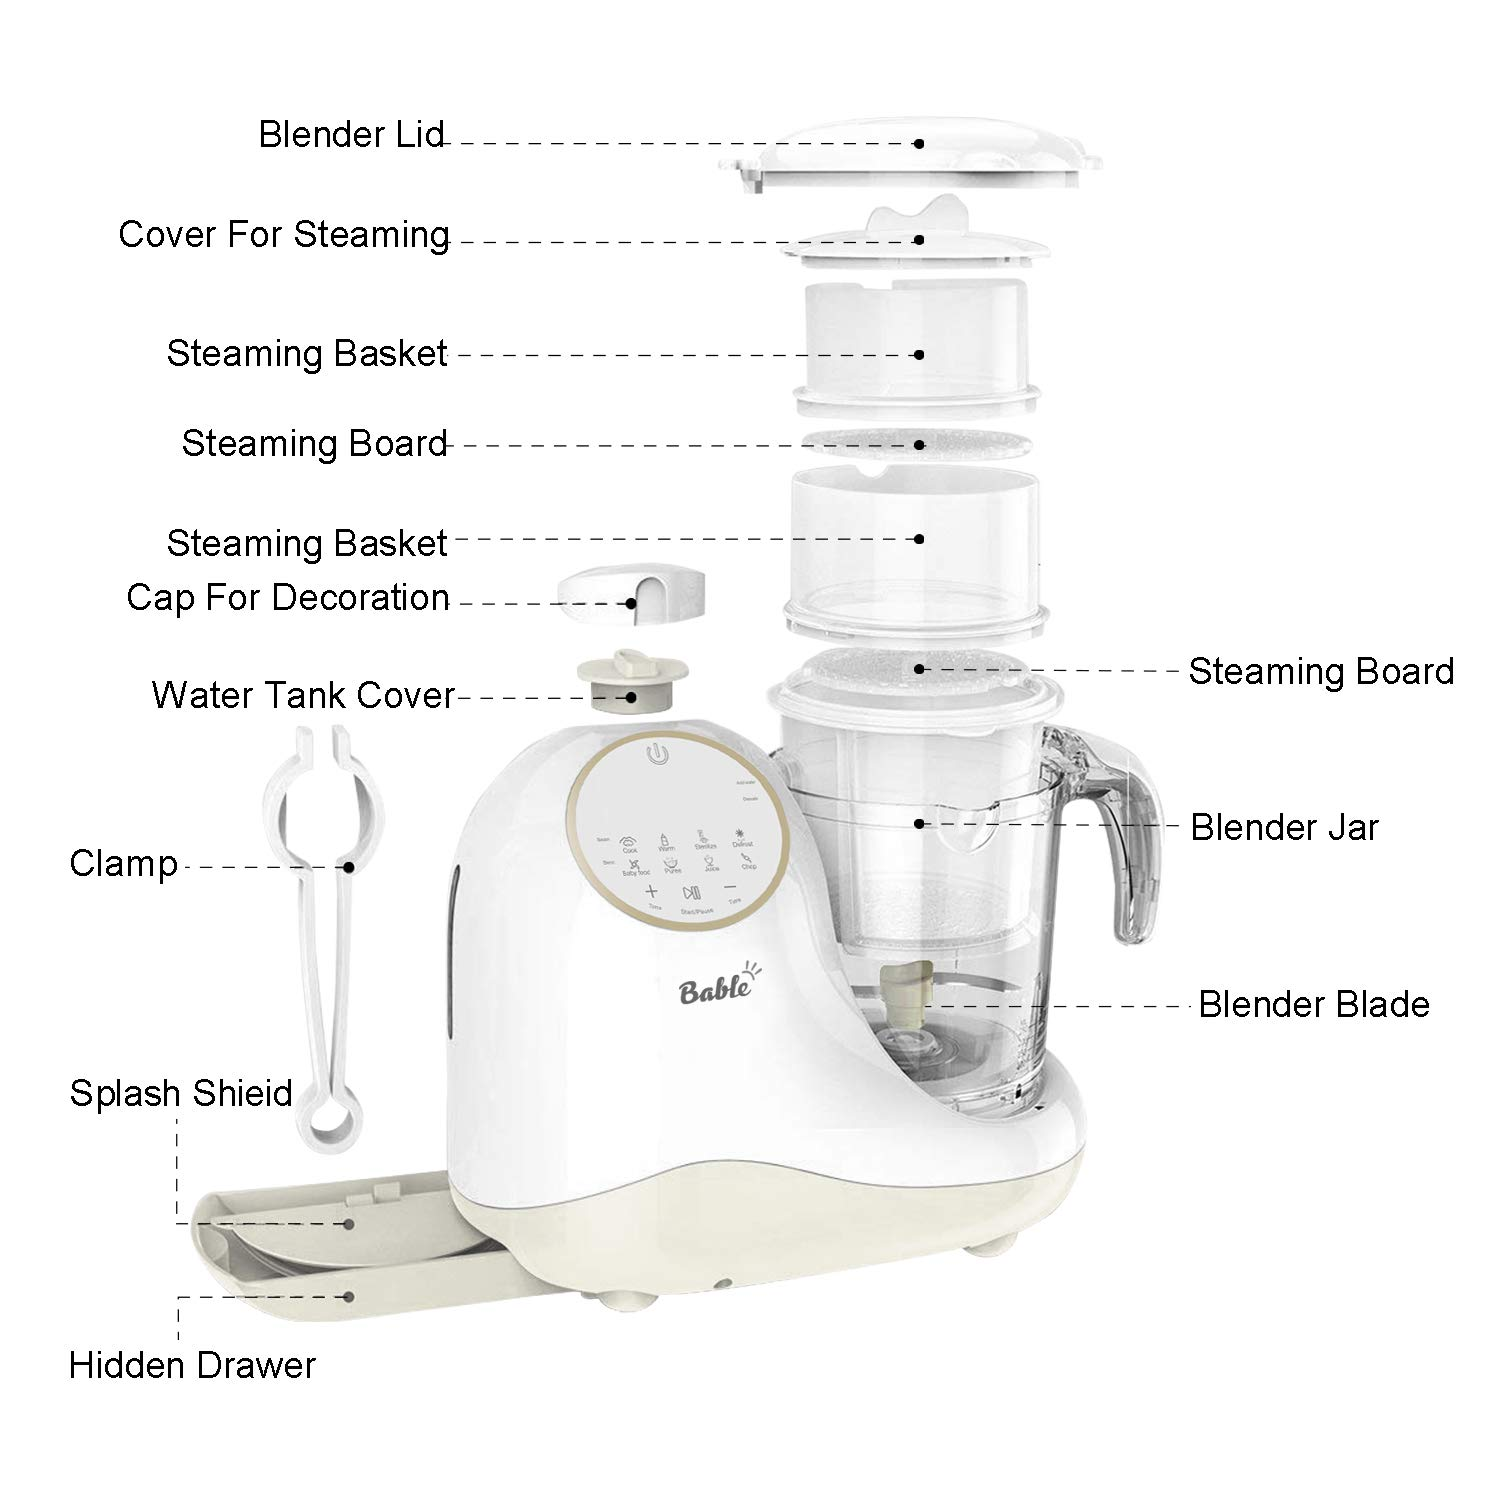 Baby Food Maker for Infants and Toddlers, Bable All in 1 Food Processor Mills Machine with Steam, Blend, Chop, Reheater, Grinder and Auto Cleaning, Touch Control Panel, Auto Shut-Off by BABLE (Image #7)